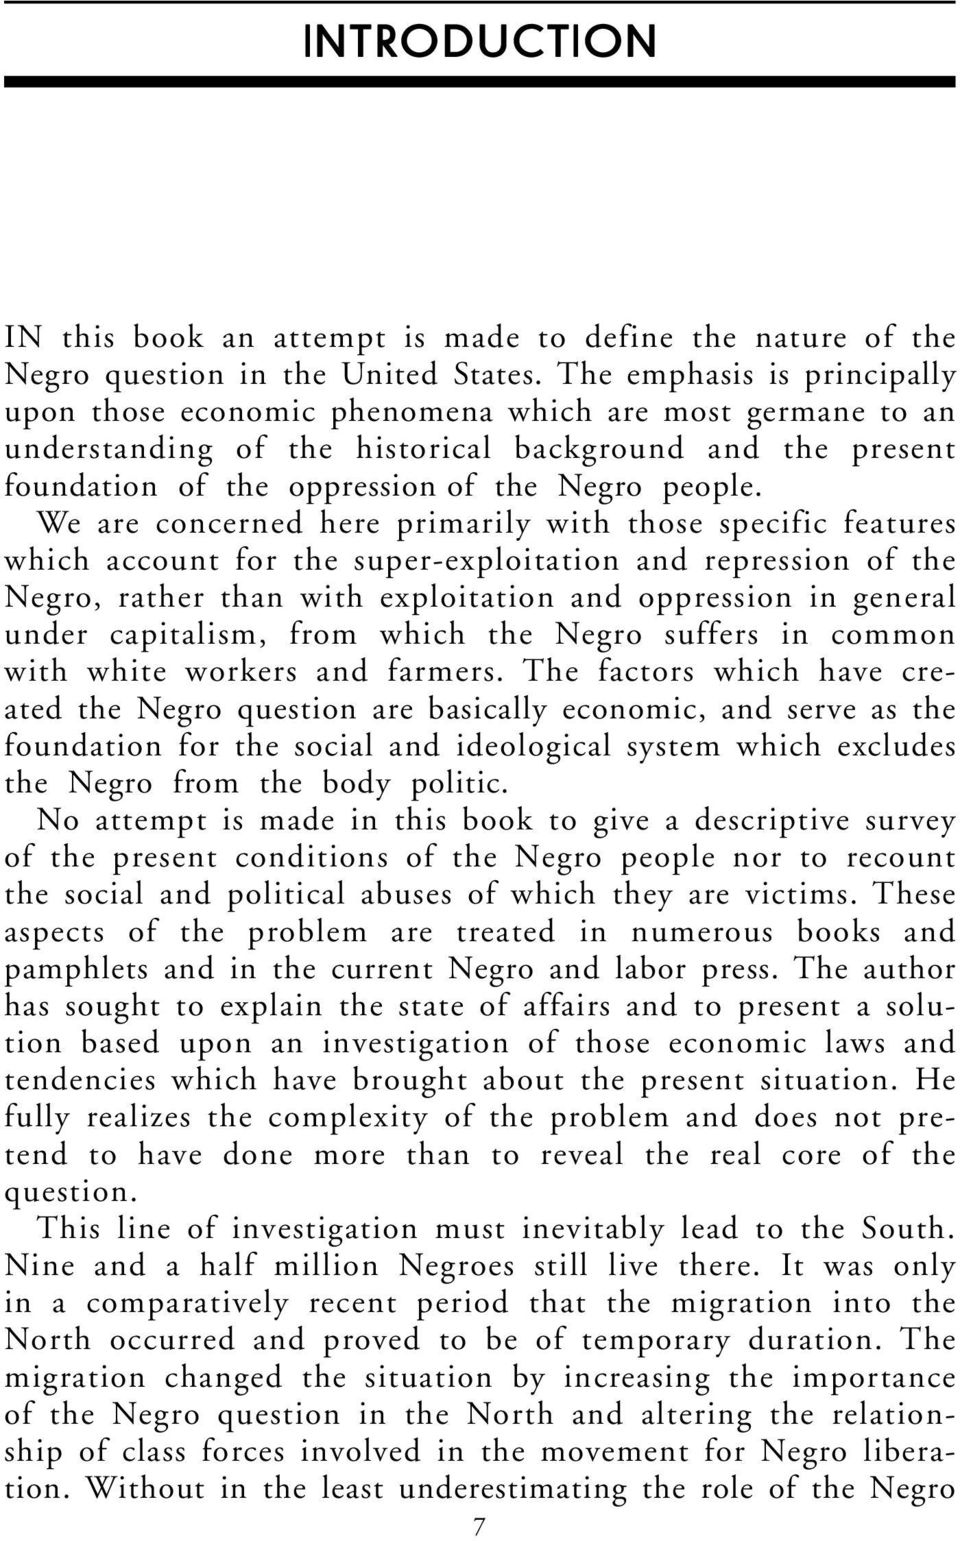 We are concerned here primarily with those specific features which account for the super-exploitation and repression of the Negro, rather than with exploitation and oppression in general under